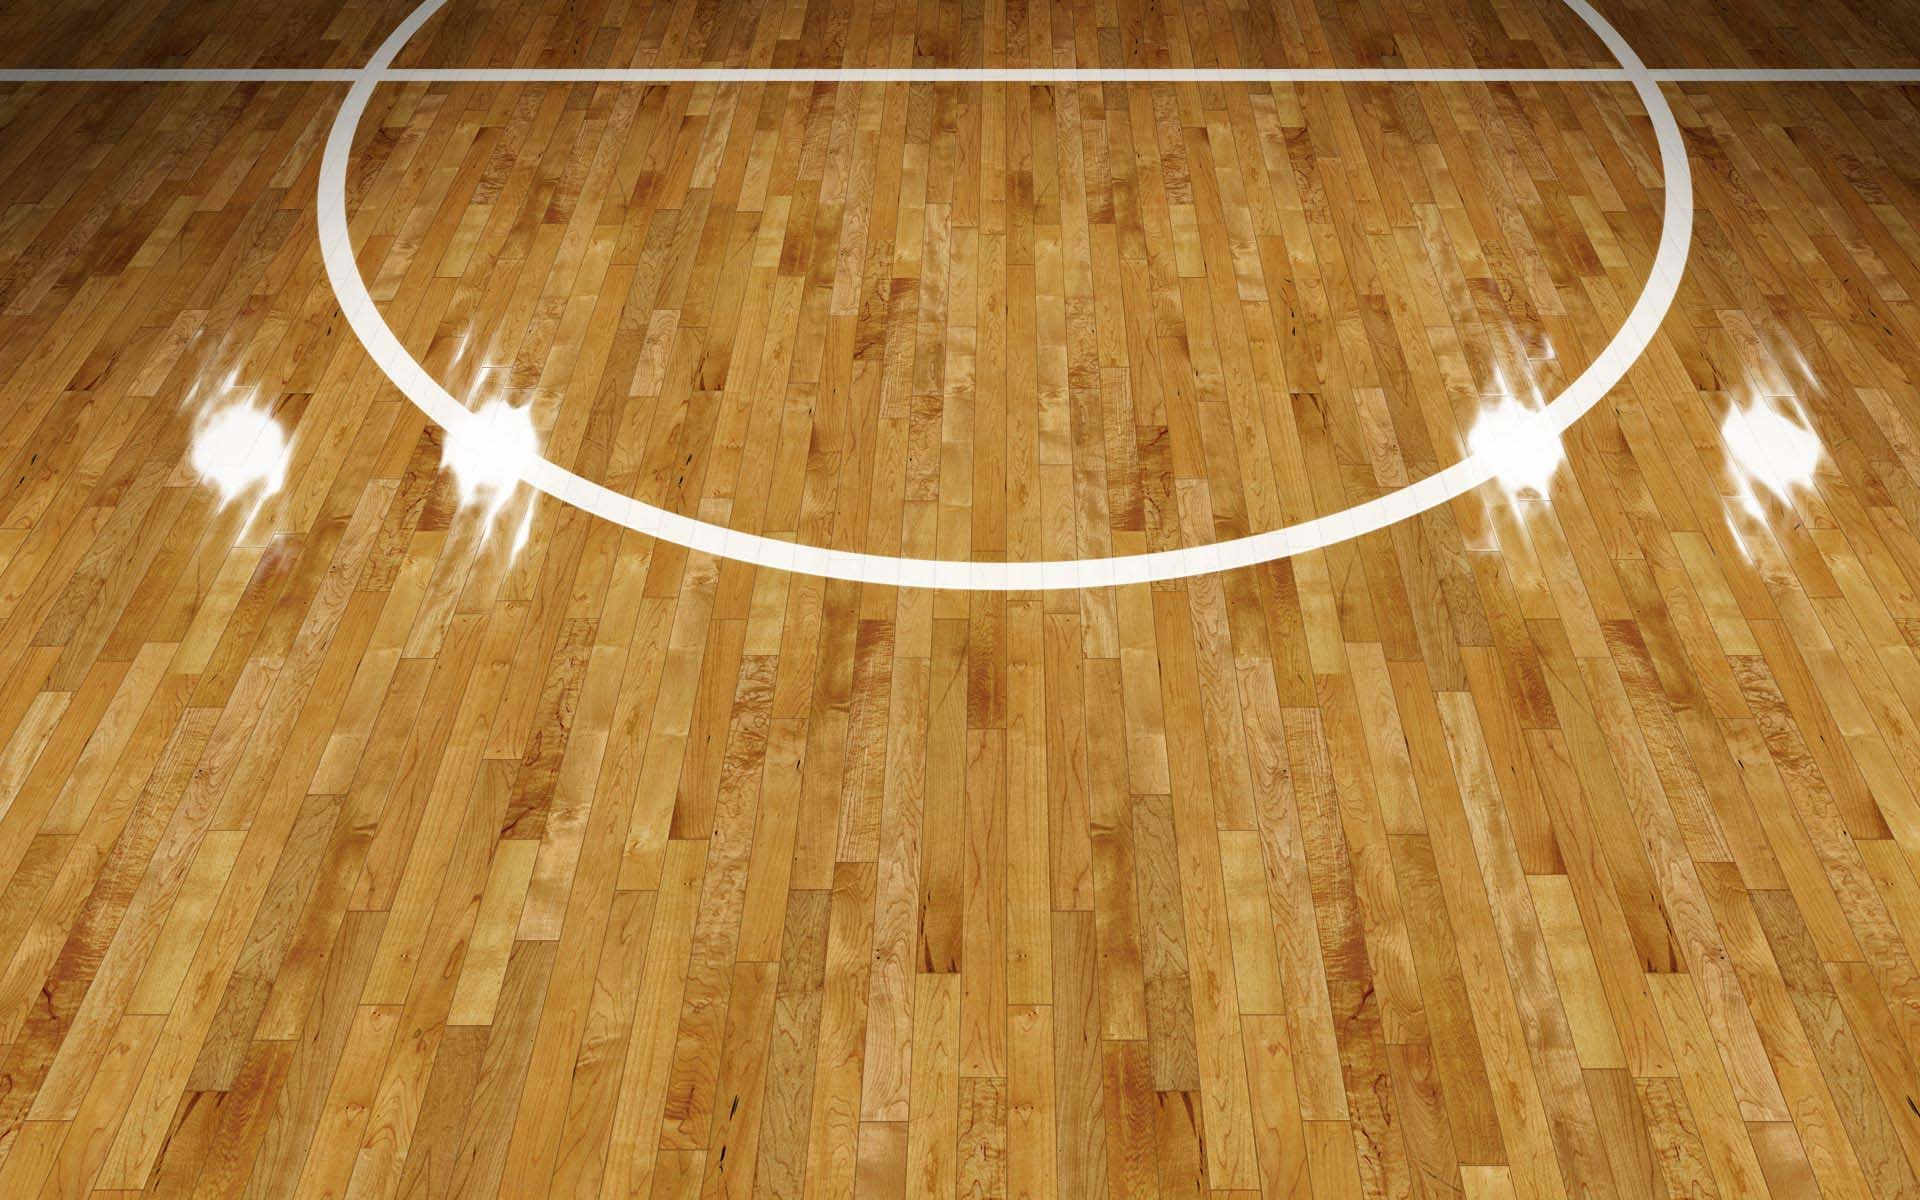 Basketball Court Background 183 ① Download Free High